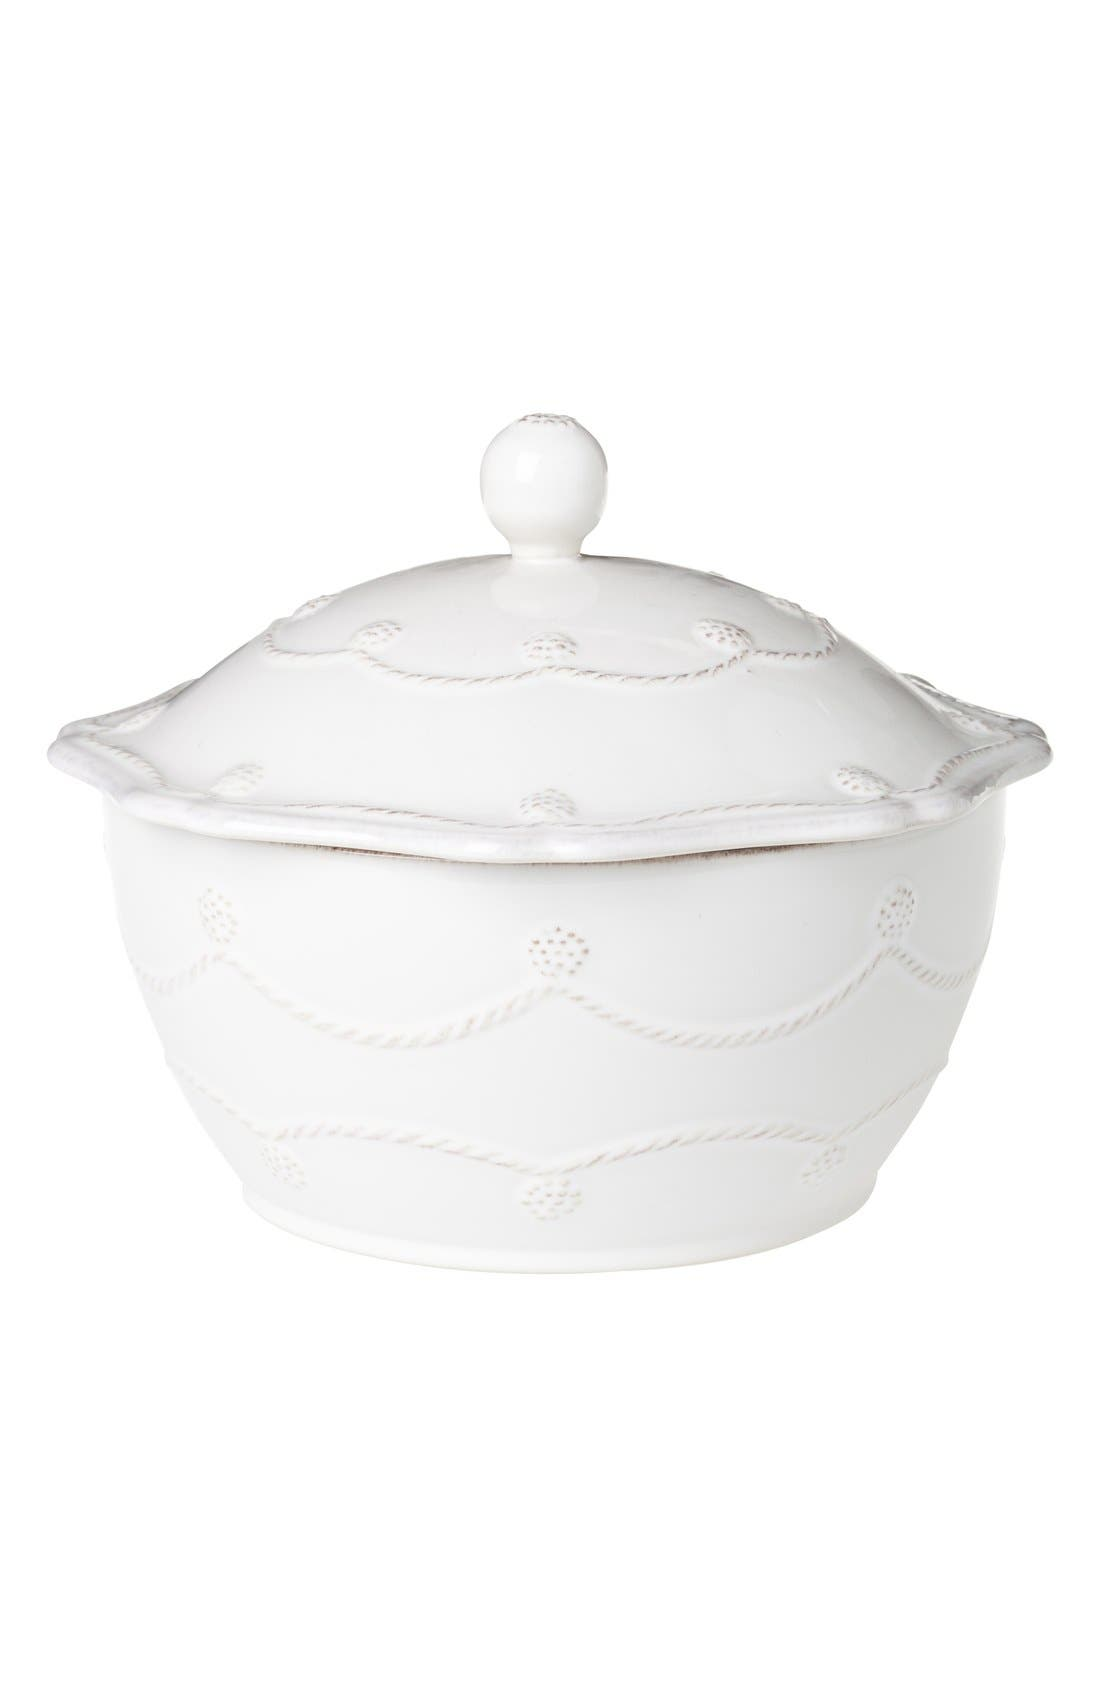 'Berry and Thread' Casserole Dish with Lid,                             Main thumbnail 1, color,                             Whitewash